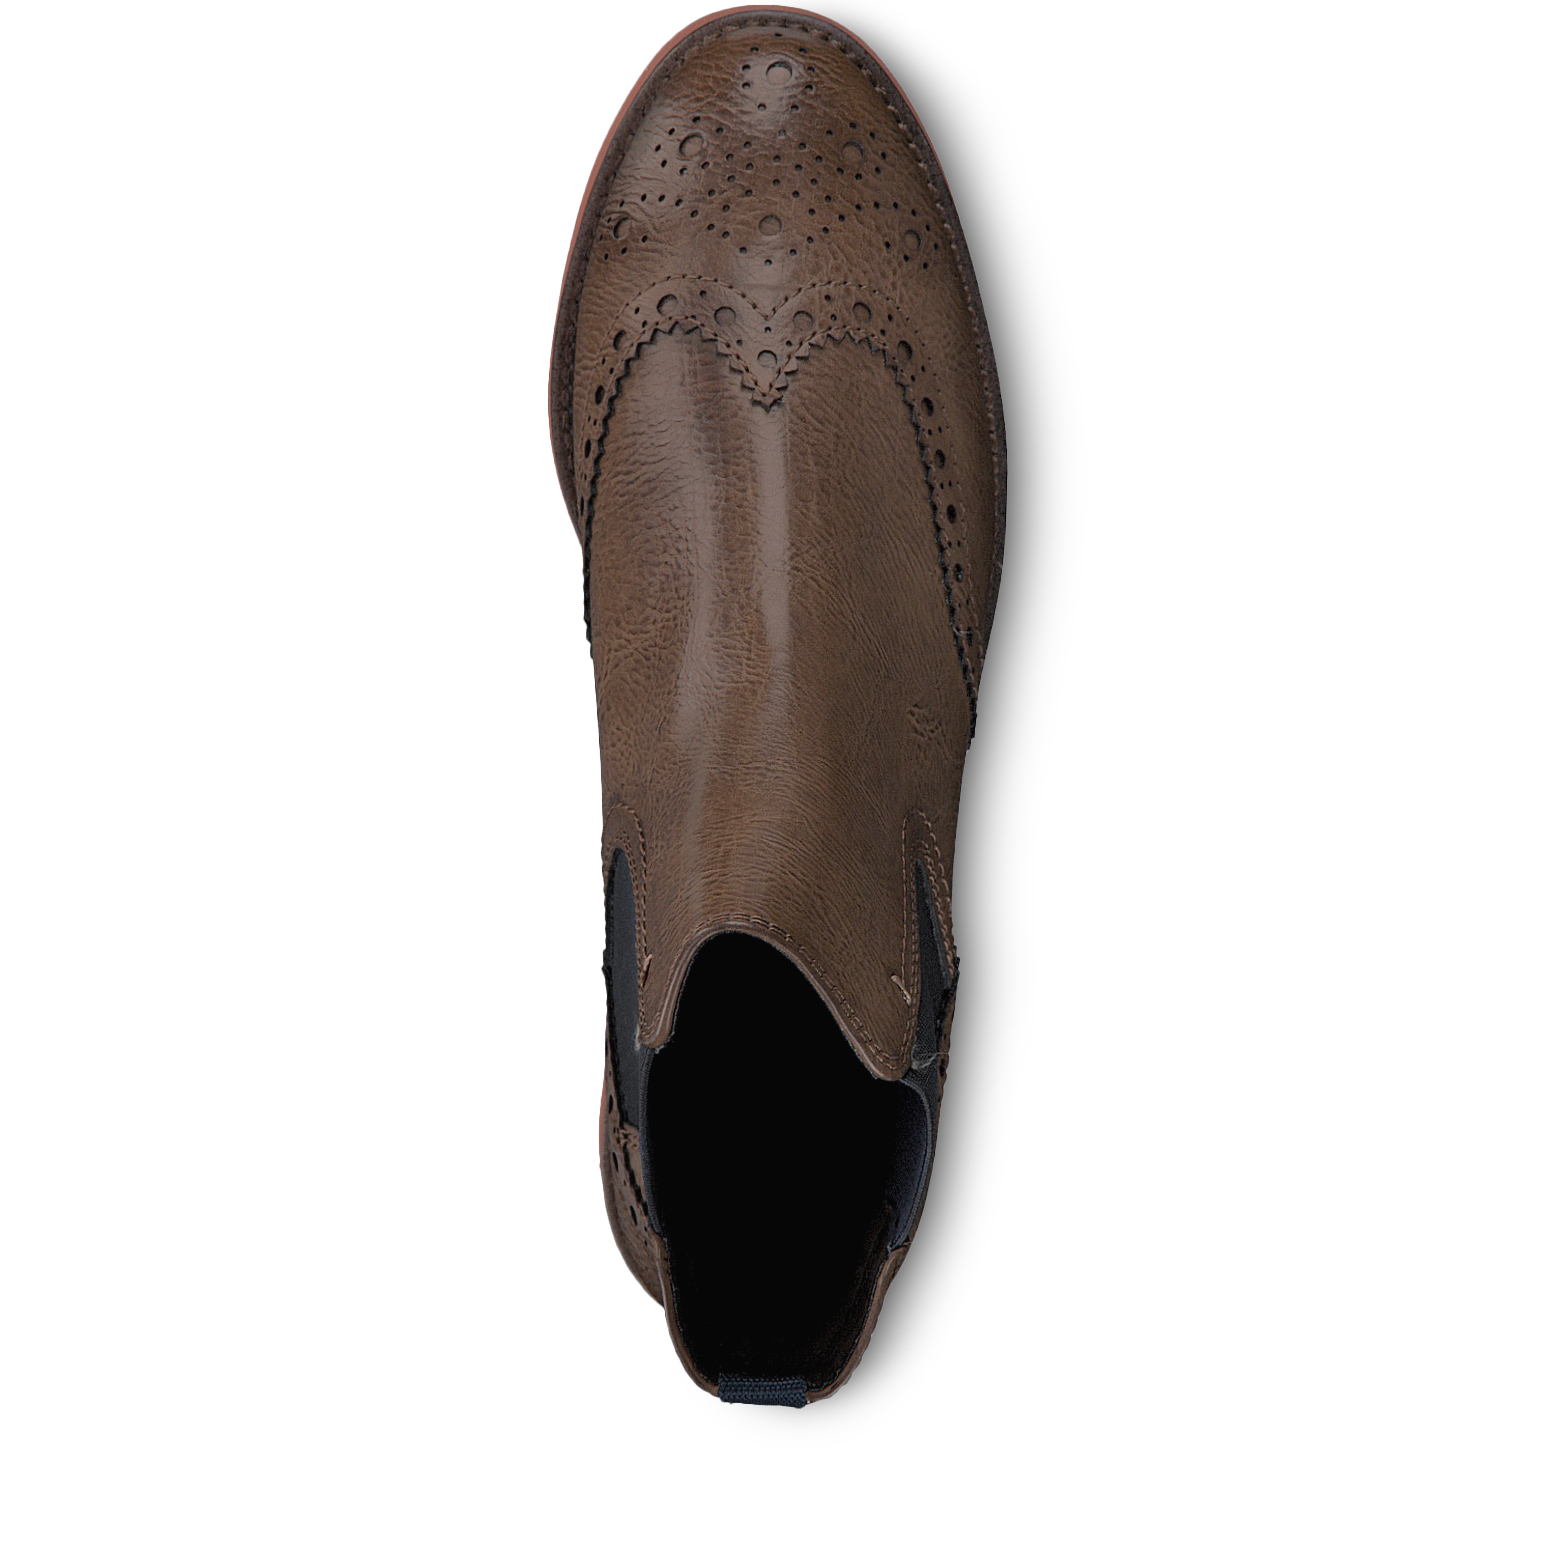 Chelsea boot - brown, COGNAC ANT.COM, hi-res